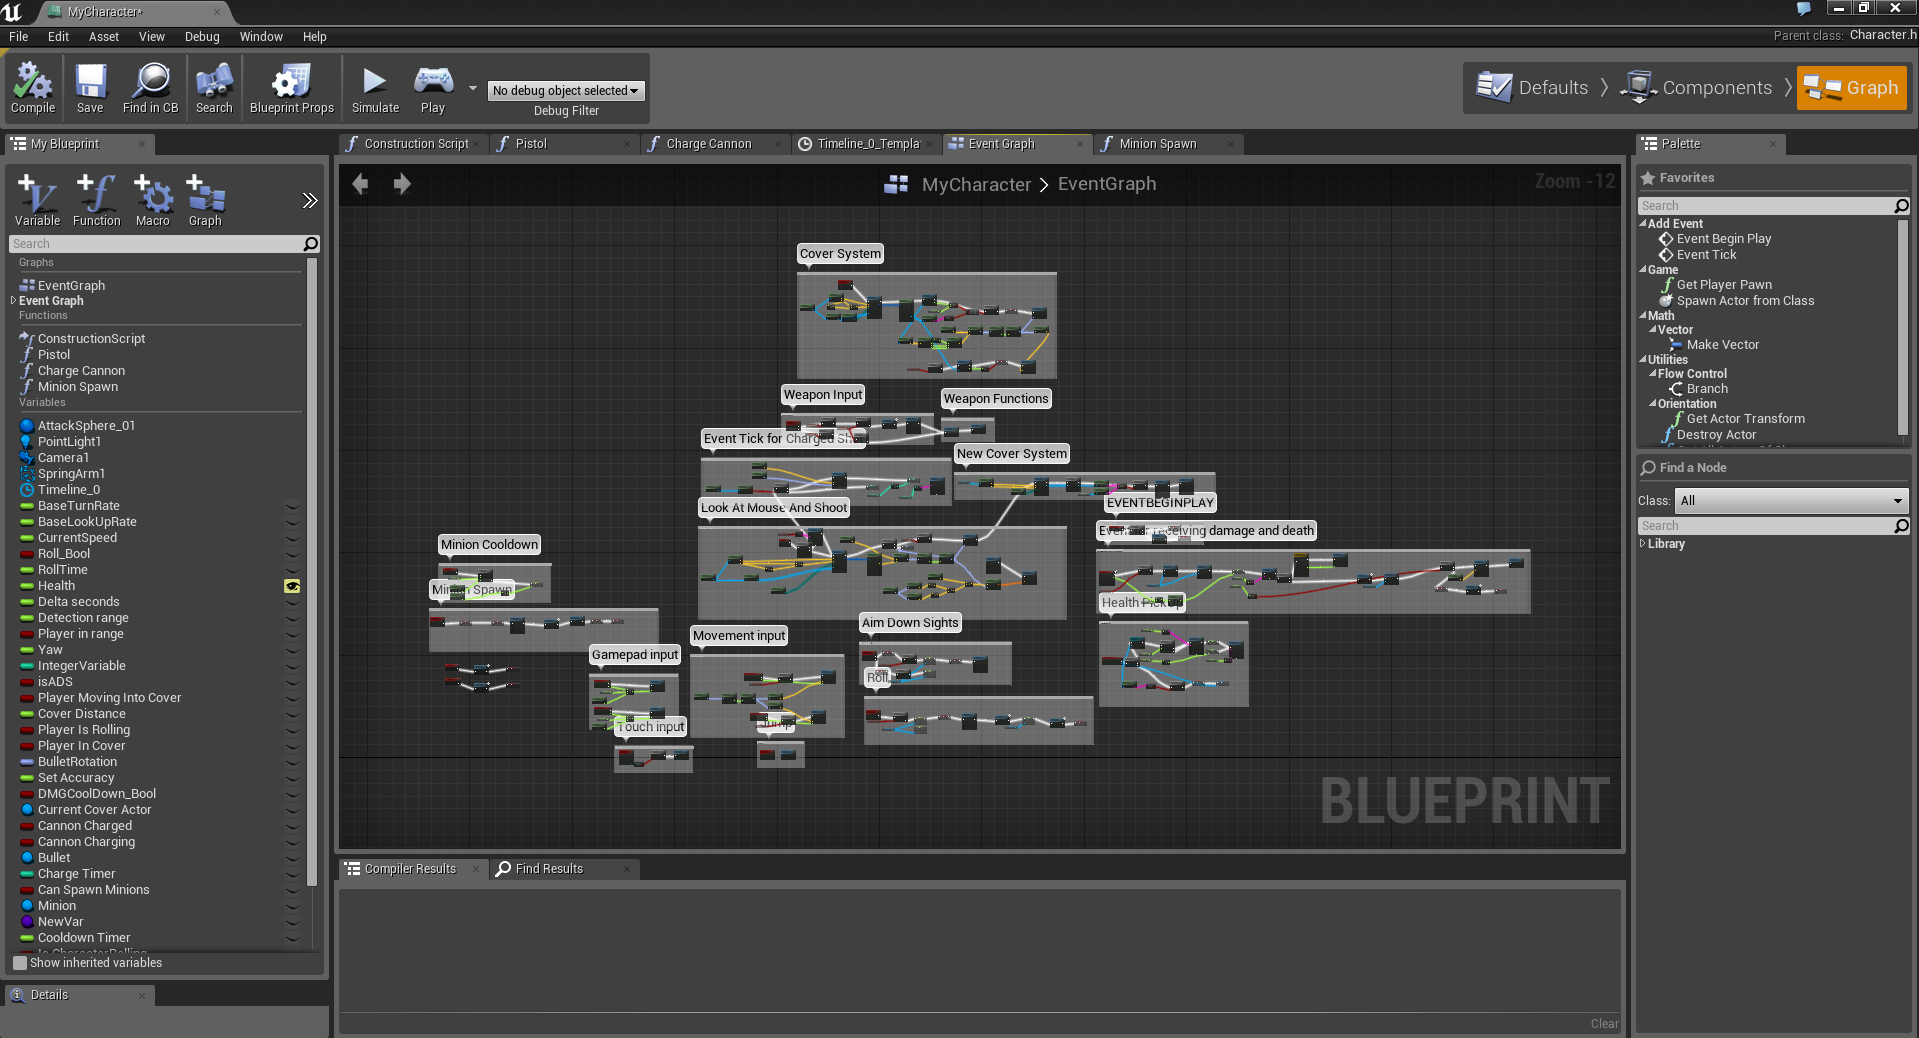 Blueprint for the main character. NOTE: A few of the functions were put in by other programmers.